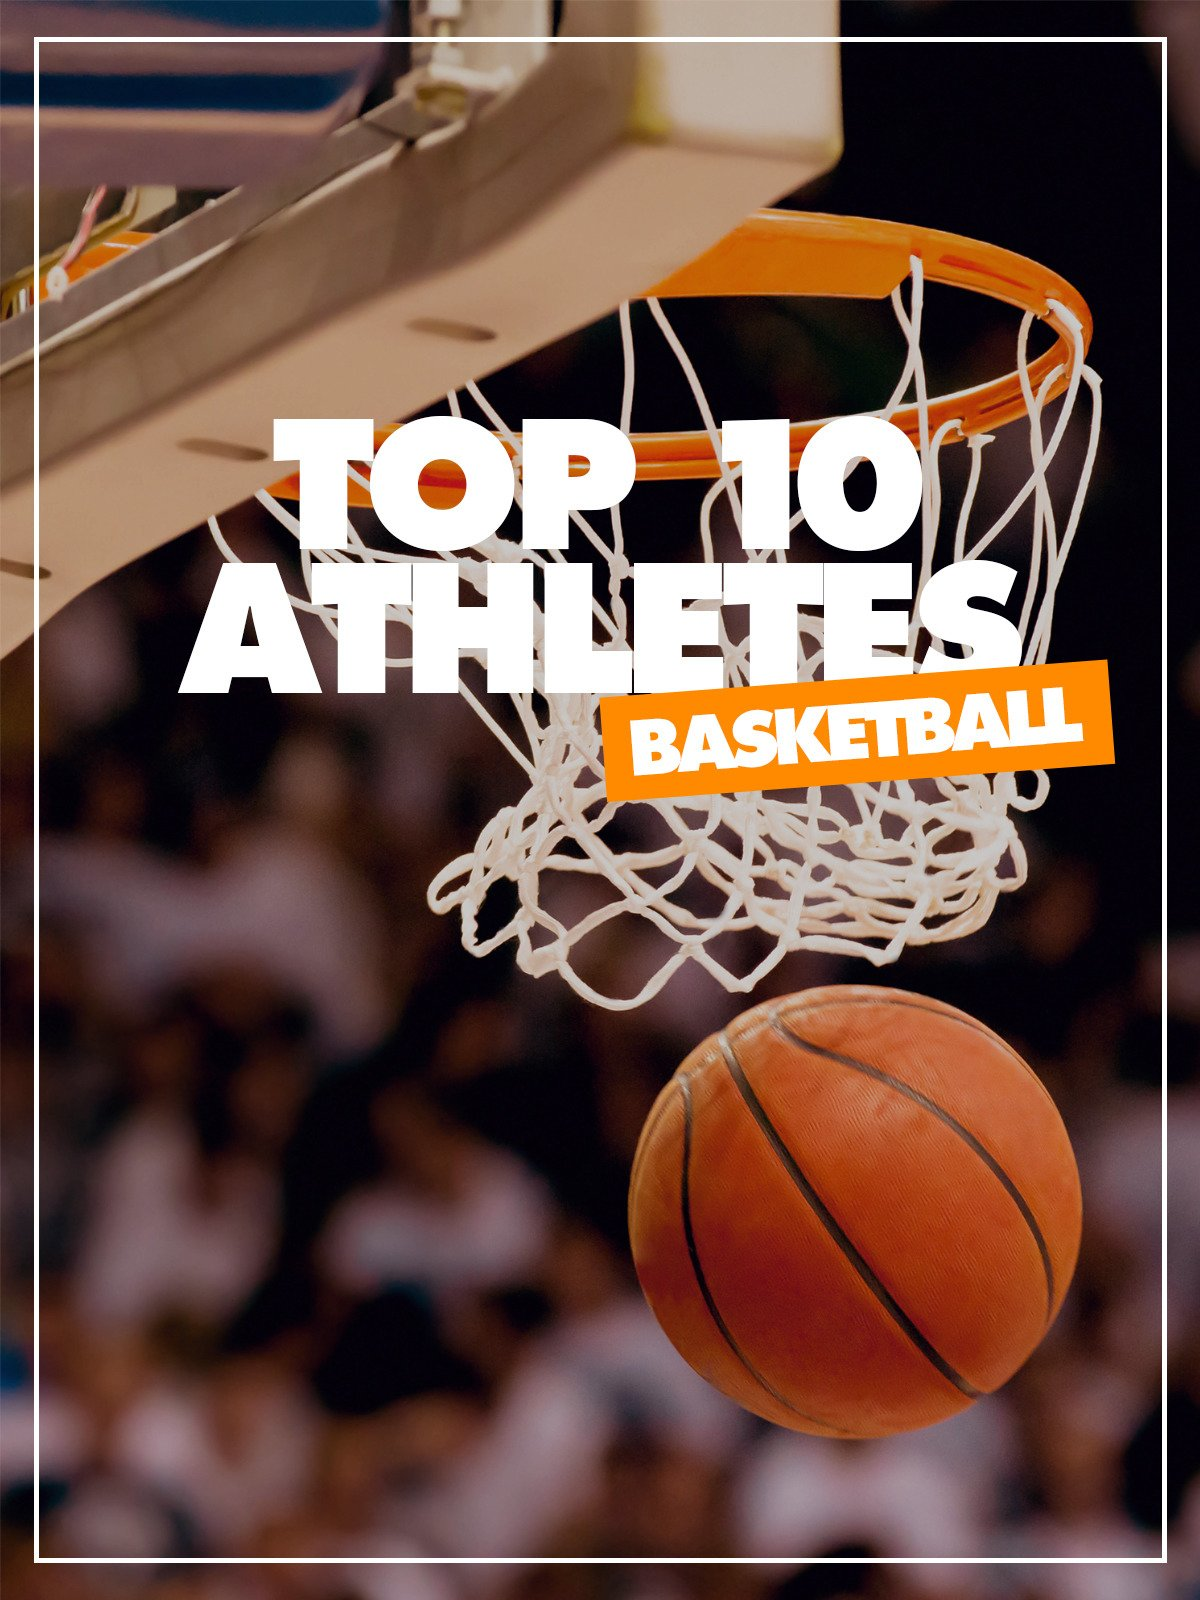 Top 10 Athletes Basketball on Amazon Prime Video UK